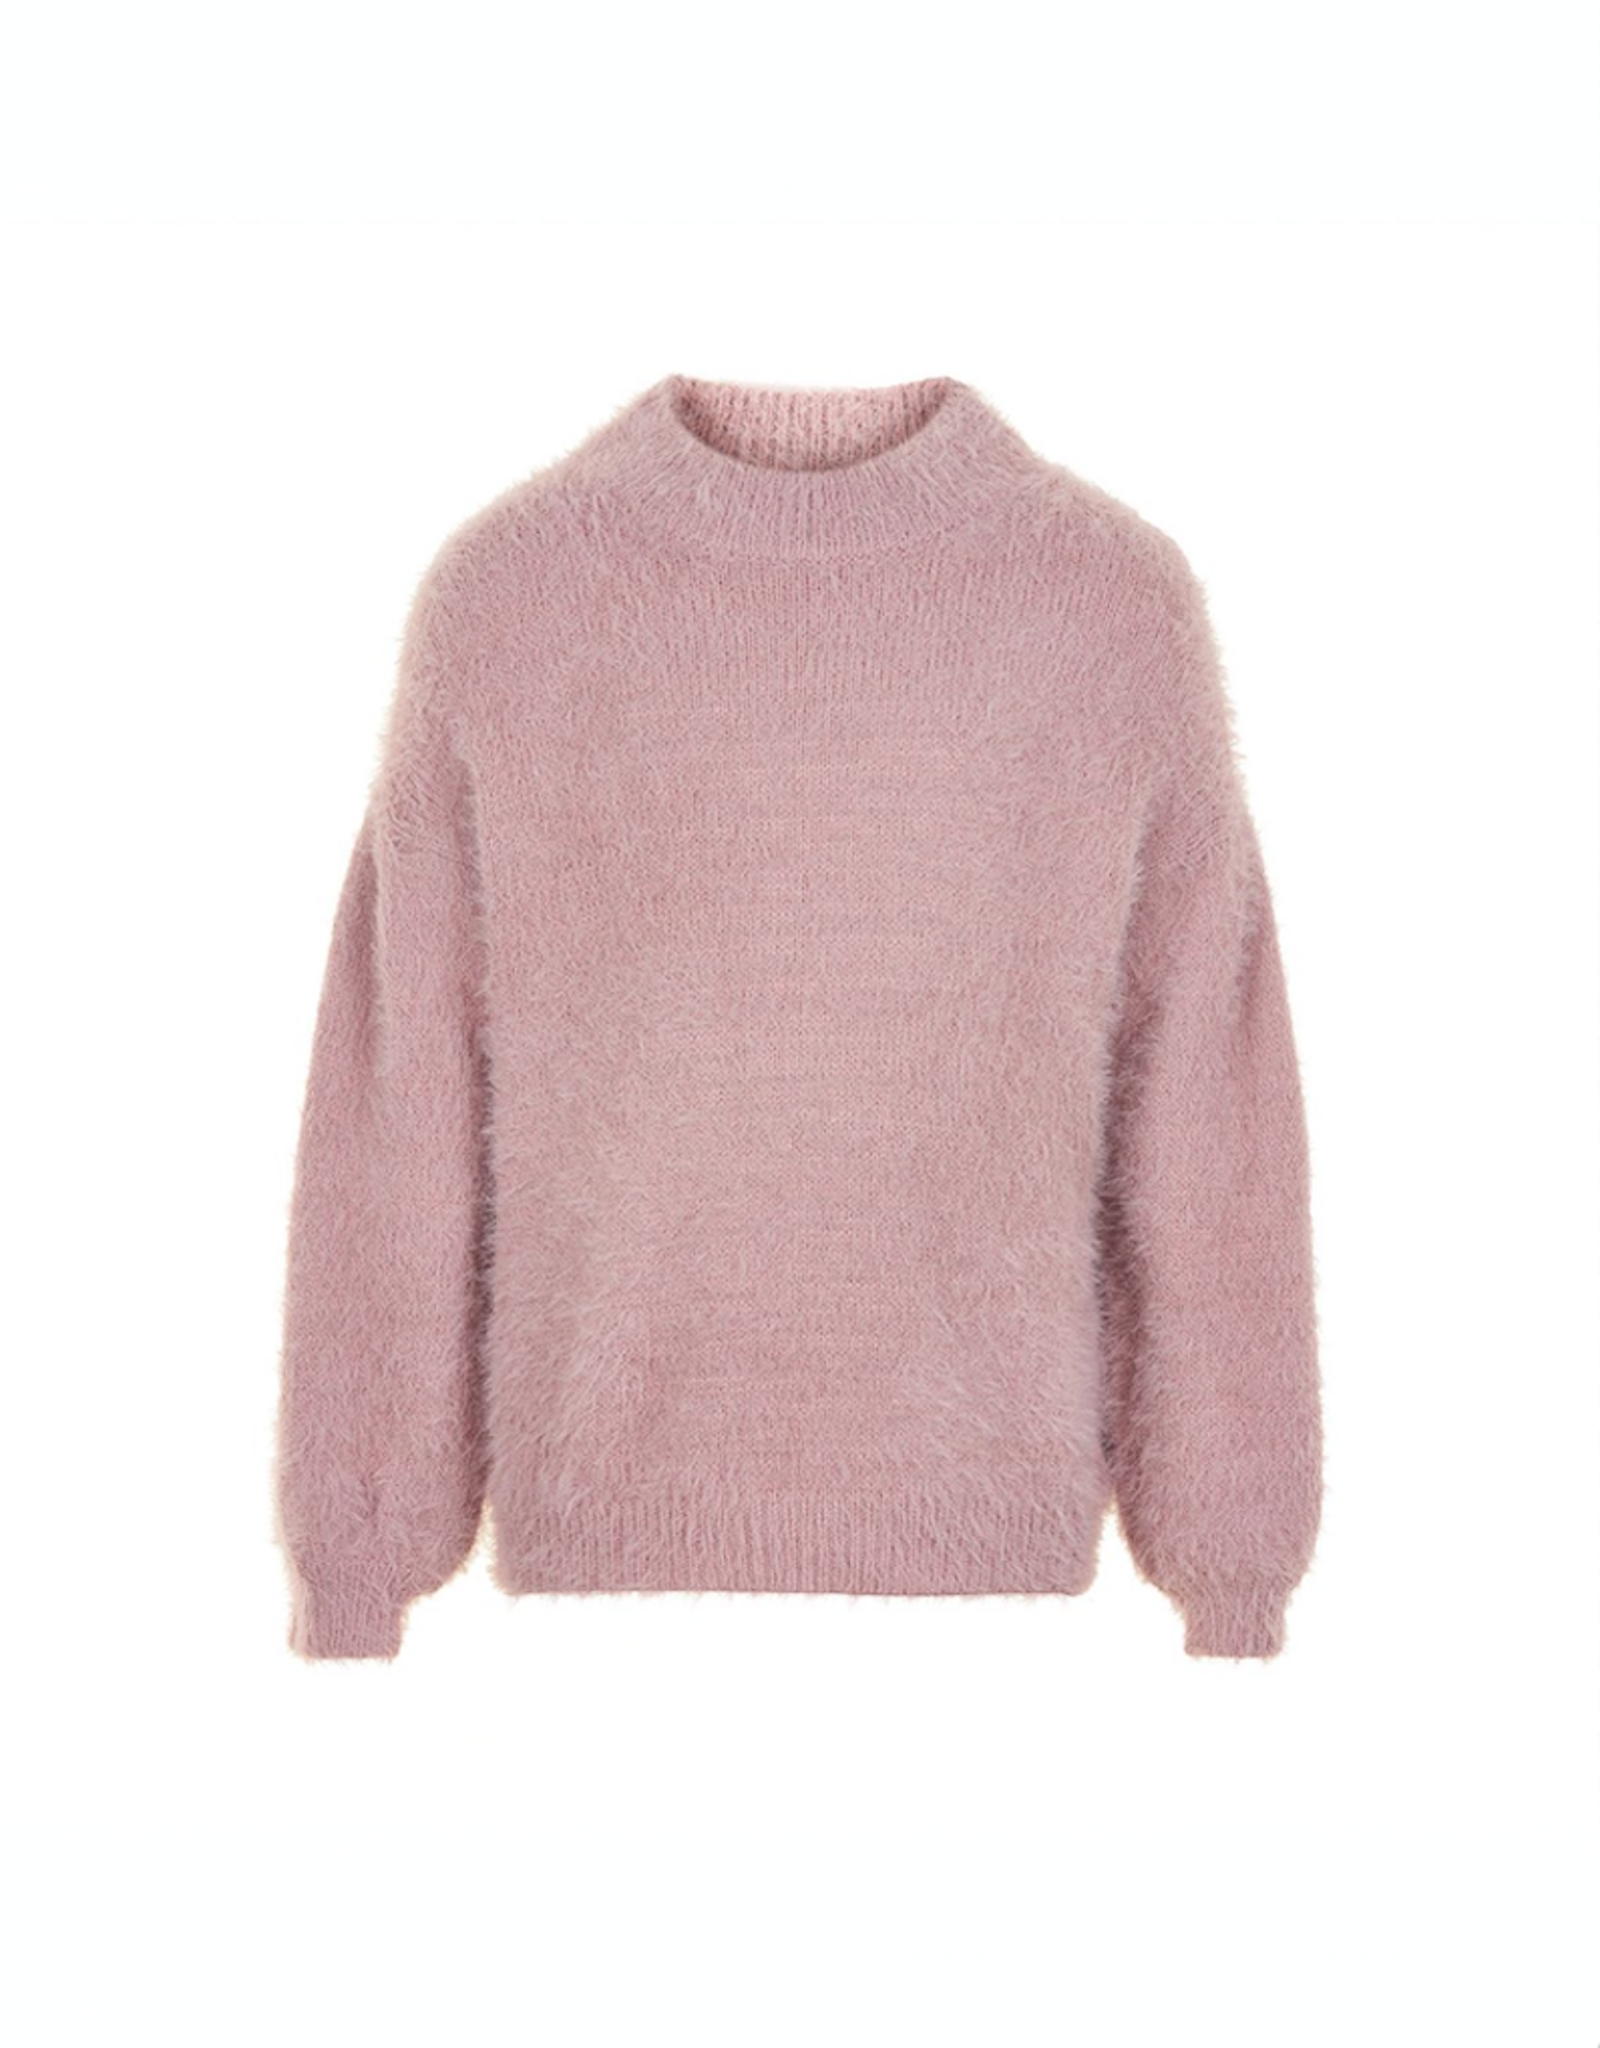 Creamie Soft Pullover Sweater in Deauville Mauv